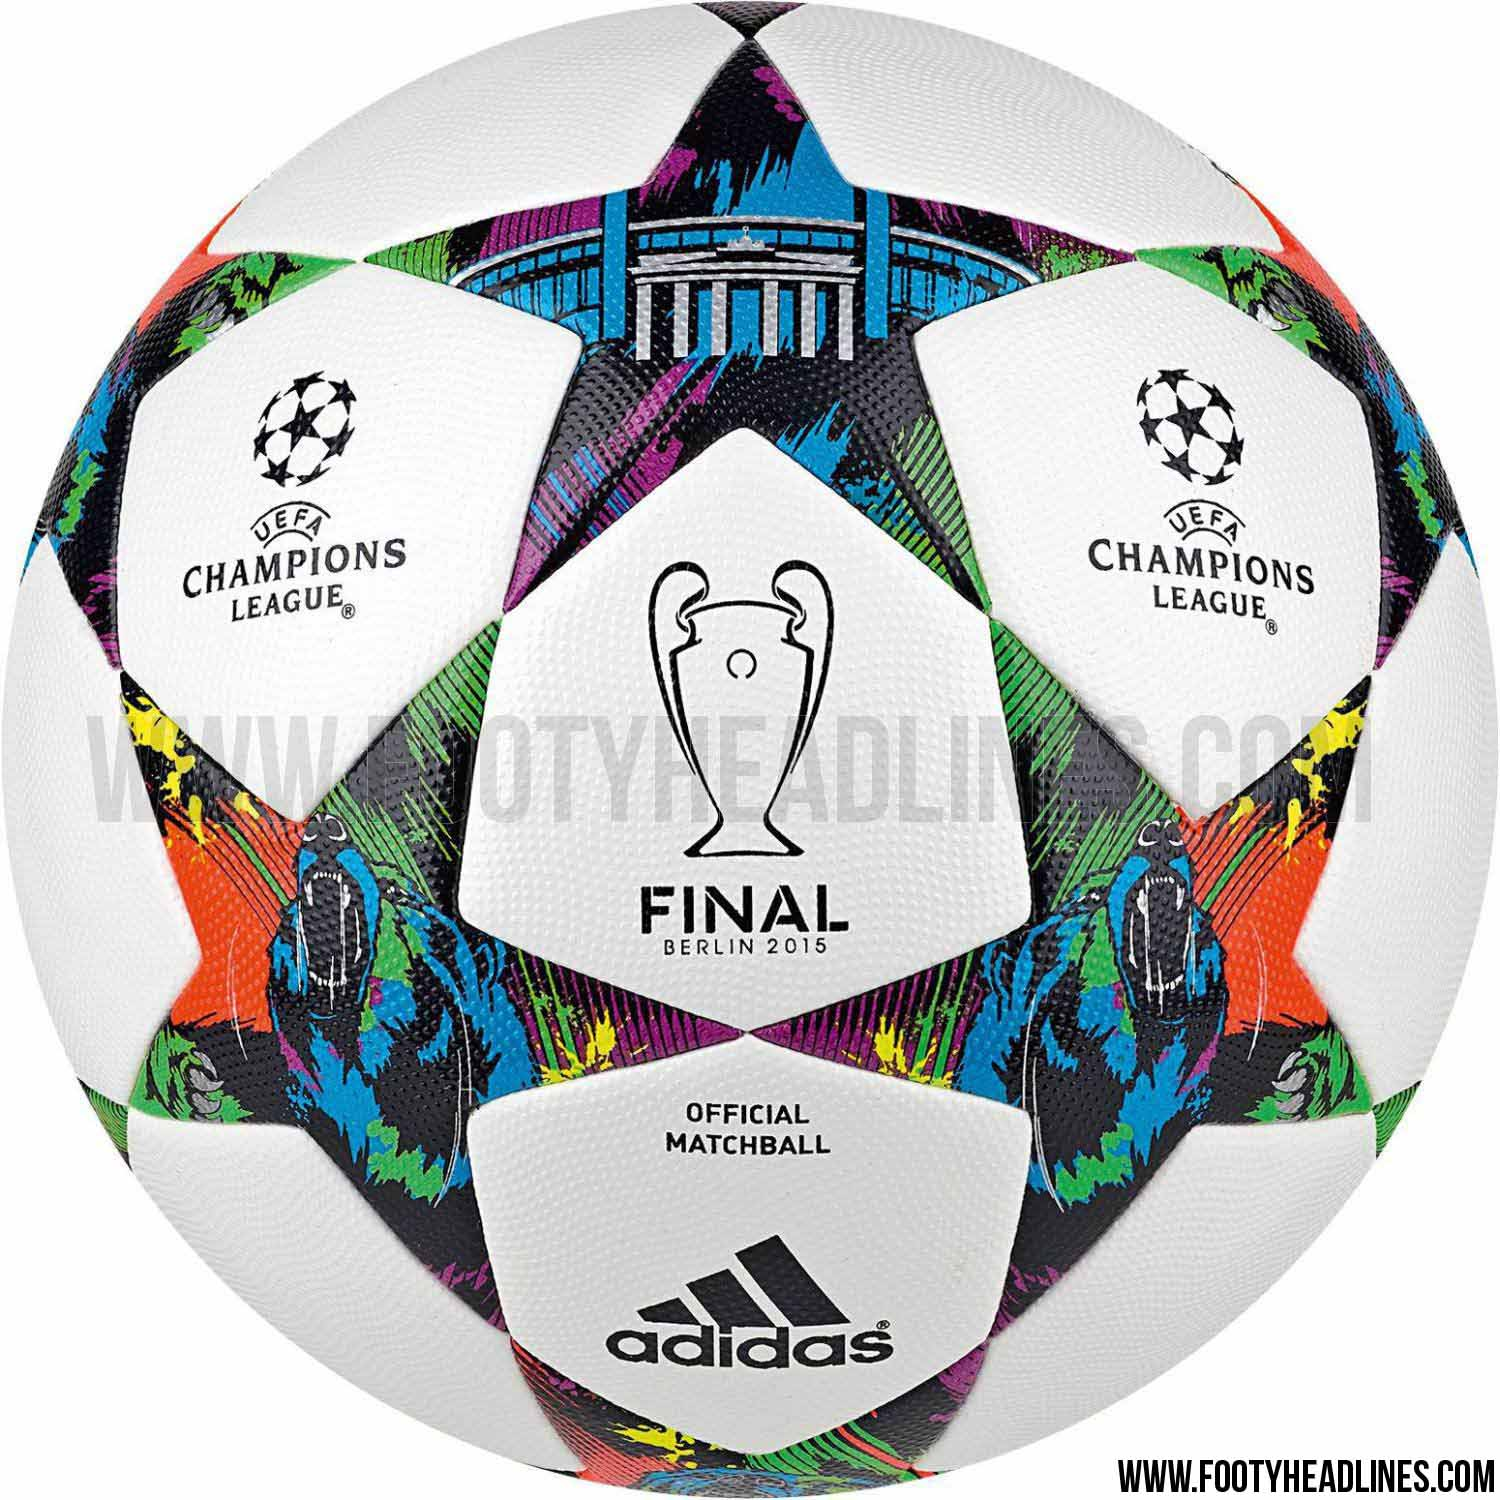 Cuadro Champions League 2014 Adidas Finale Berlin 2015 Champions League Ball Released